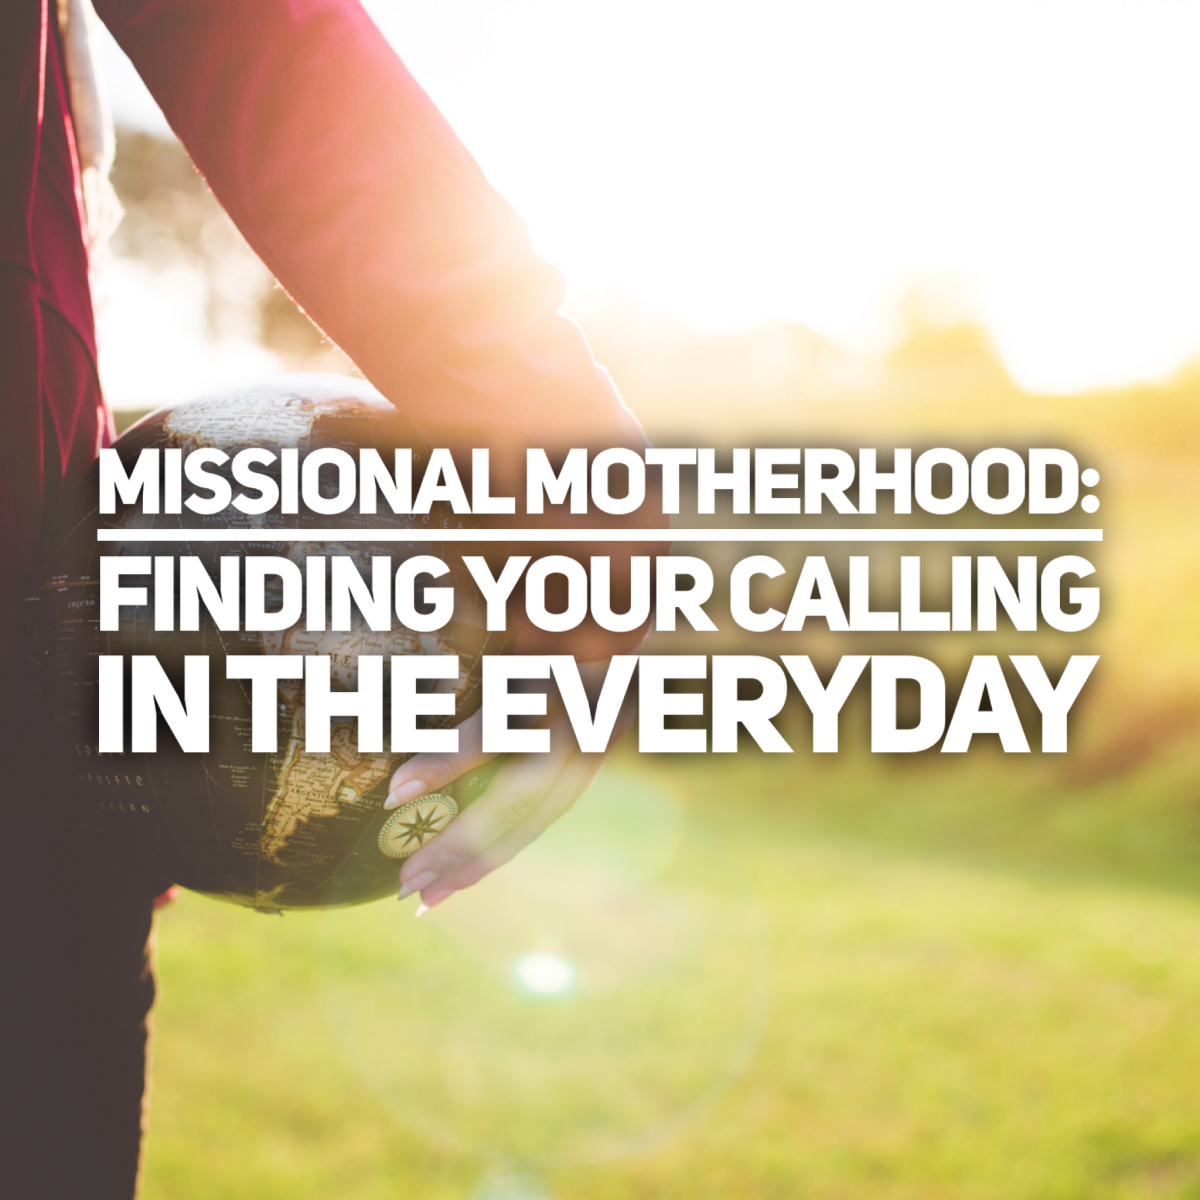 Missional Motherhood: Finding Your Calling in the Everyday